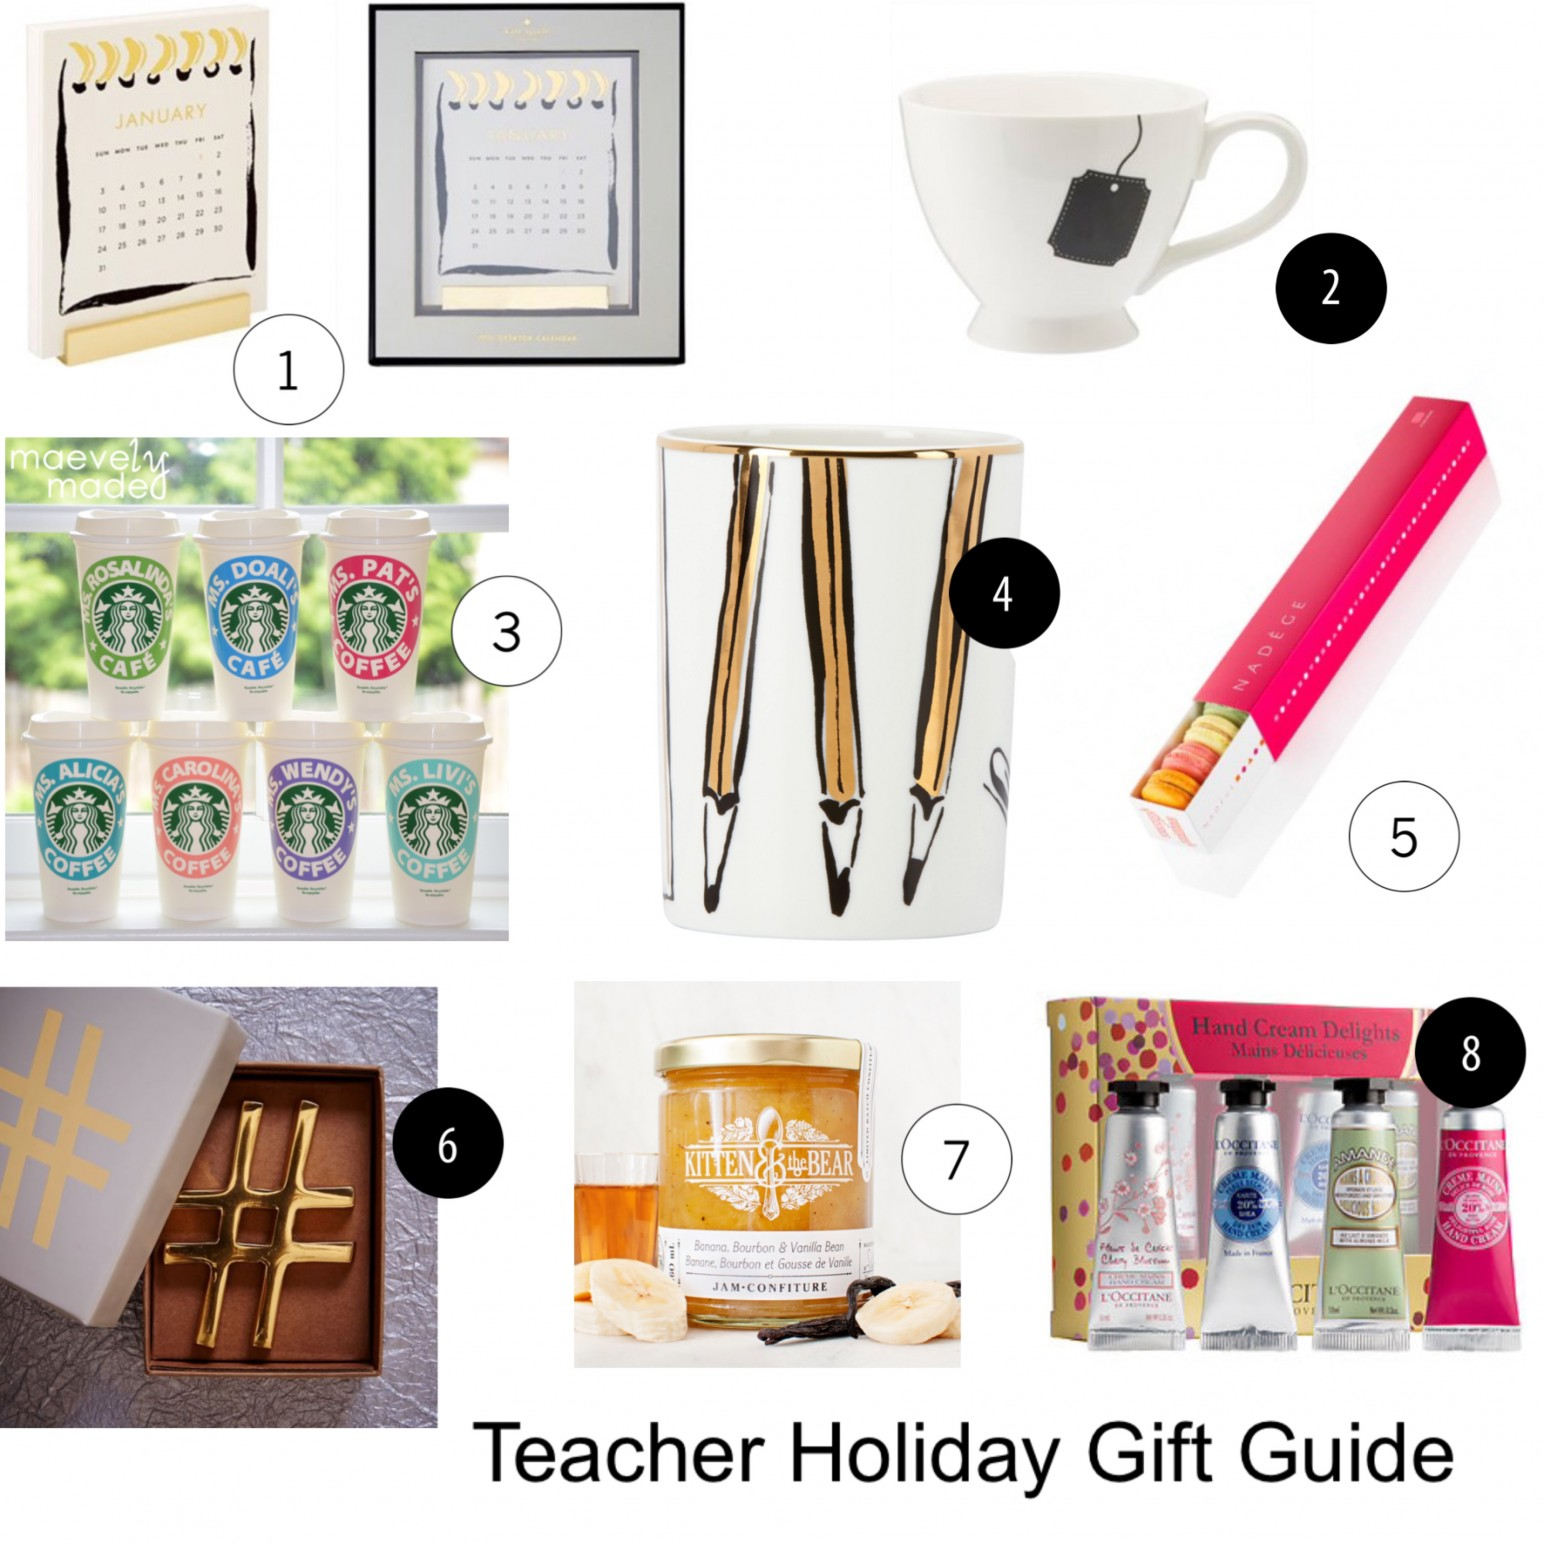 Teacher Holiday Gift Guide for under $30